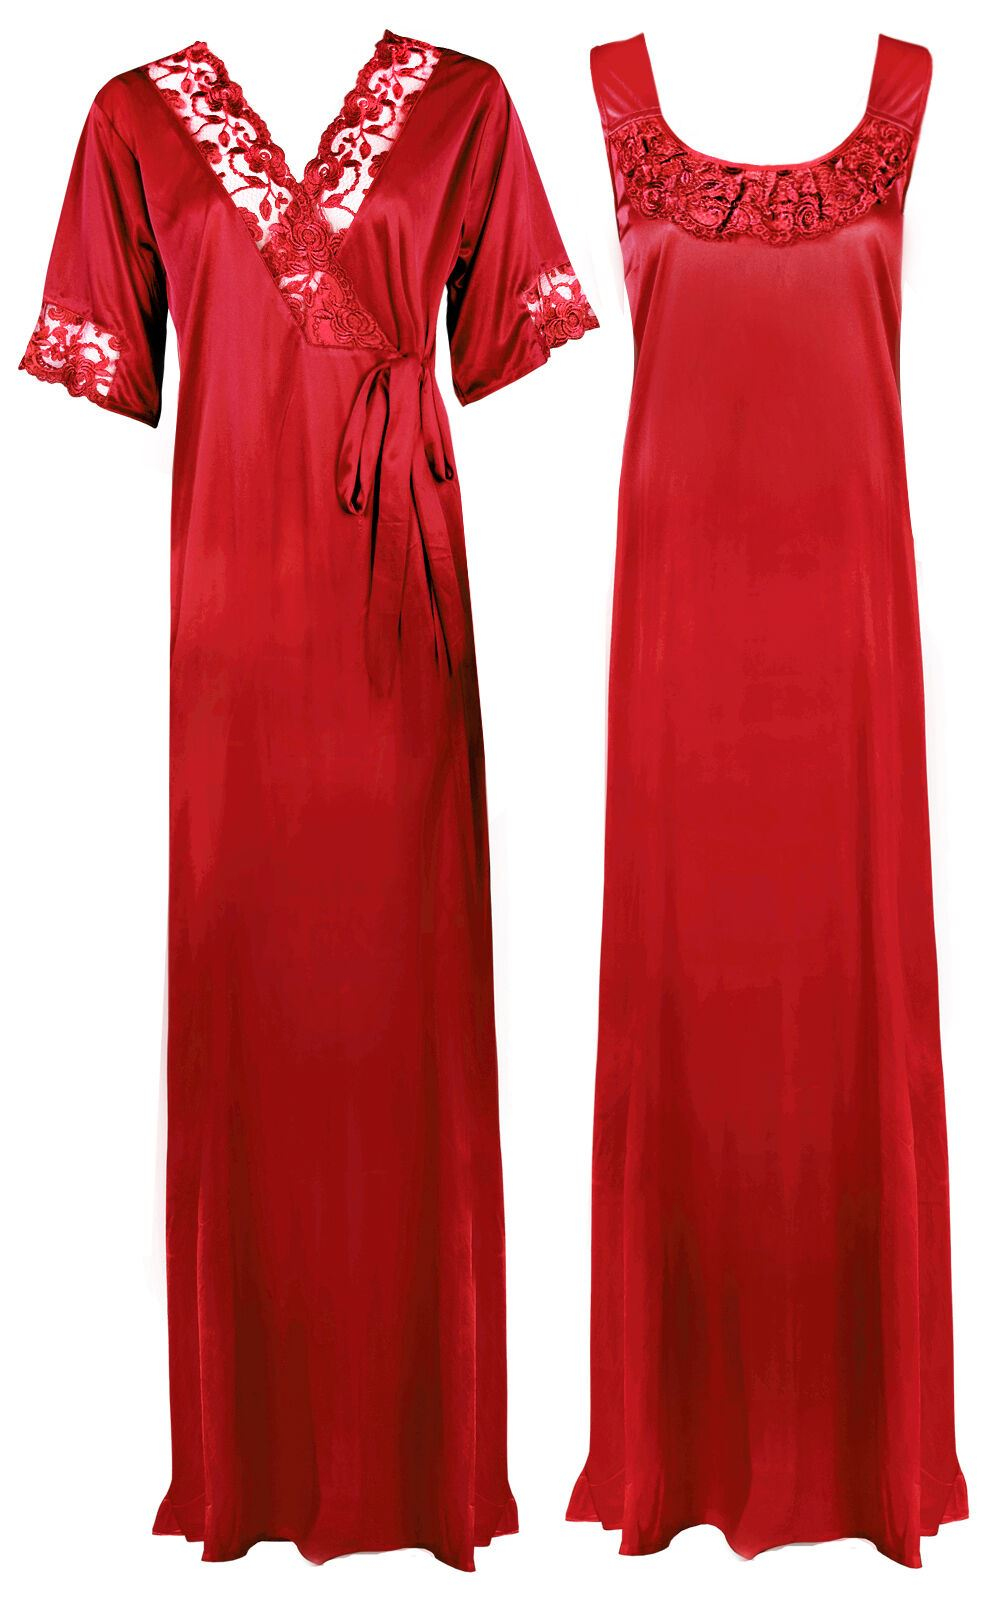 Women Plus Size 2 Pcs Satin Nightdress - XL. 2XL DEEP RED Hautie Nightfashion